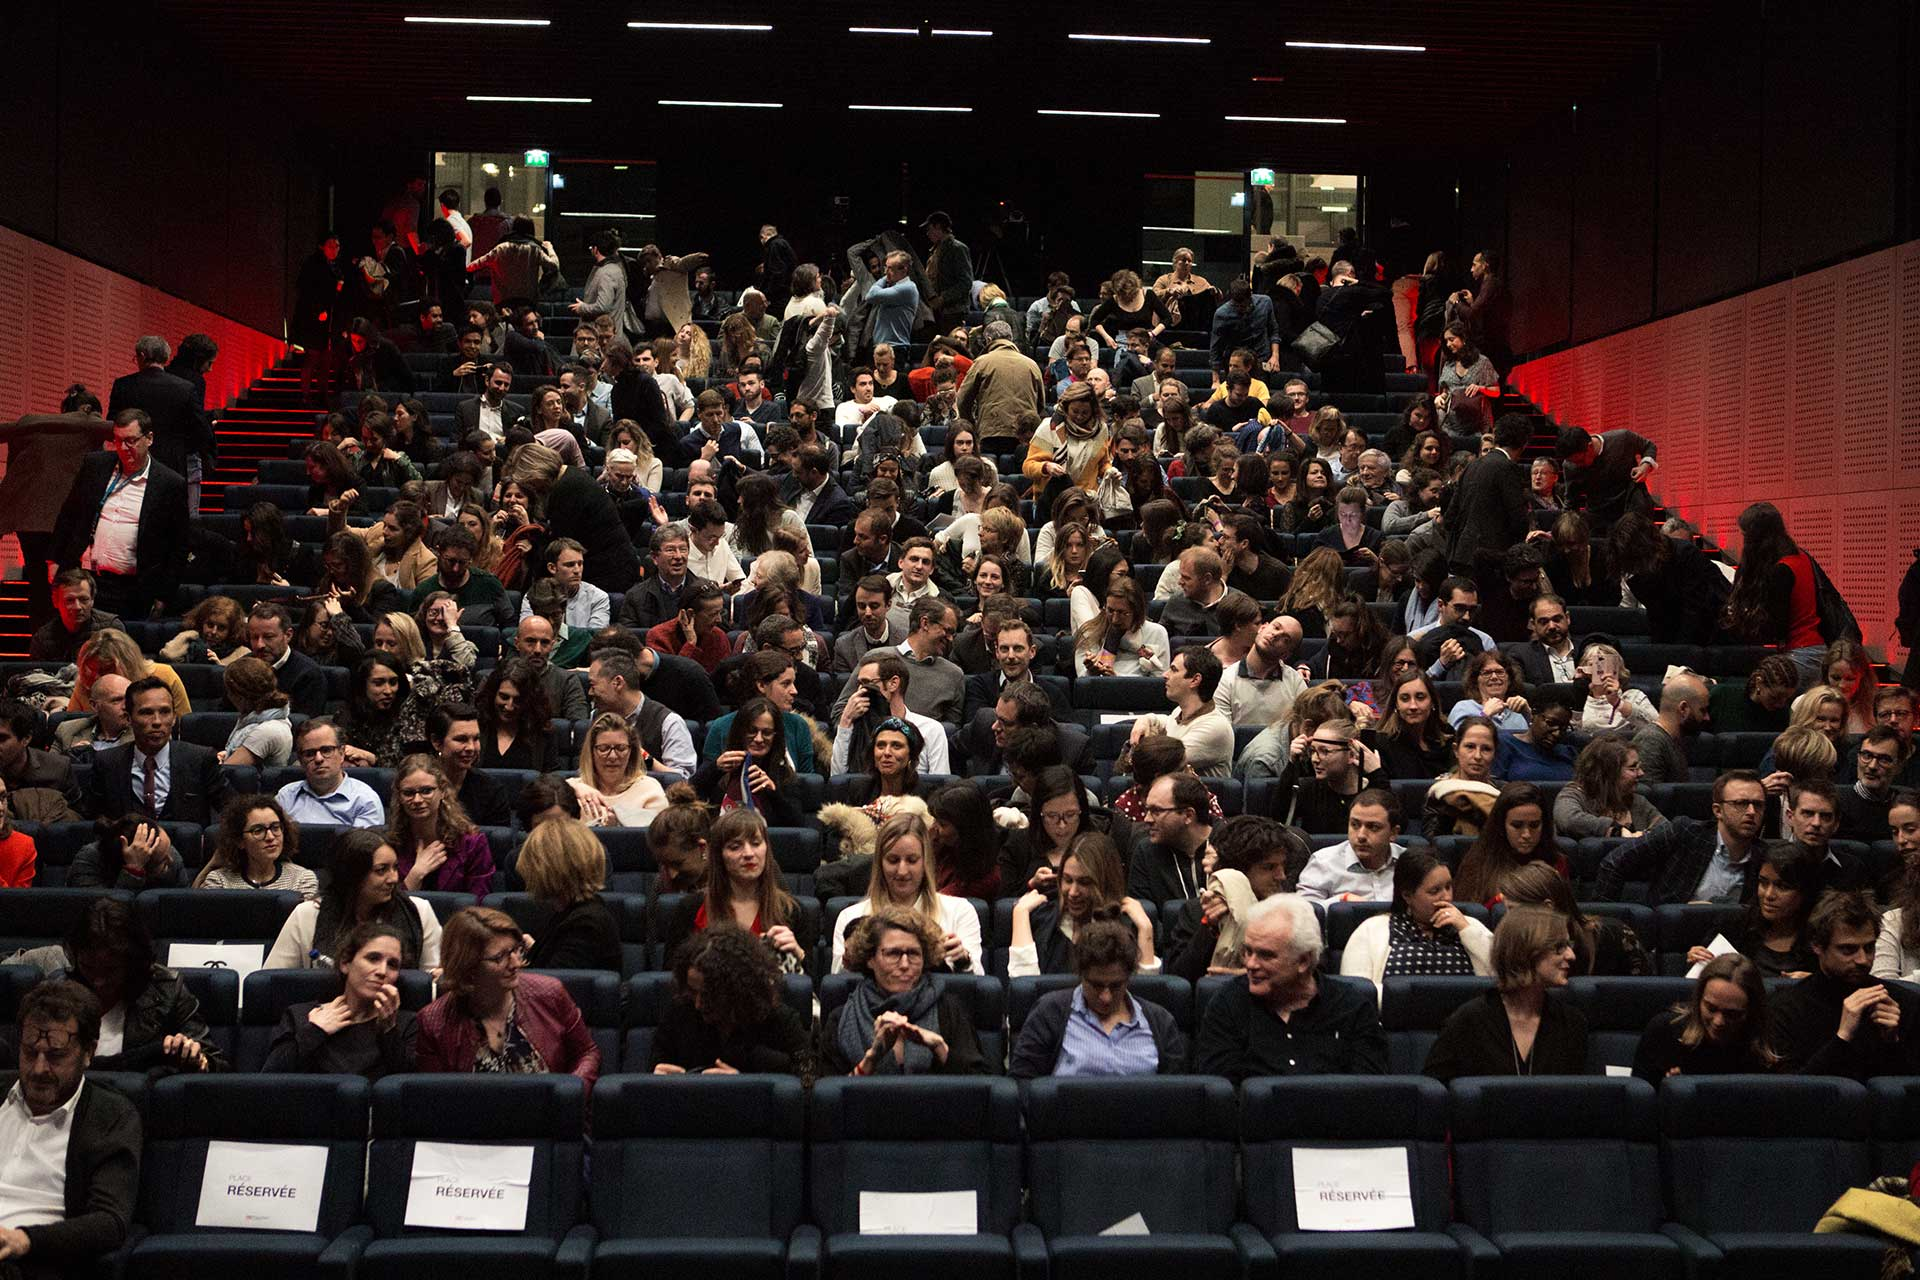 conference-TEDxParisSalon-2019-14.jpg